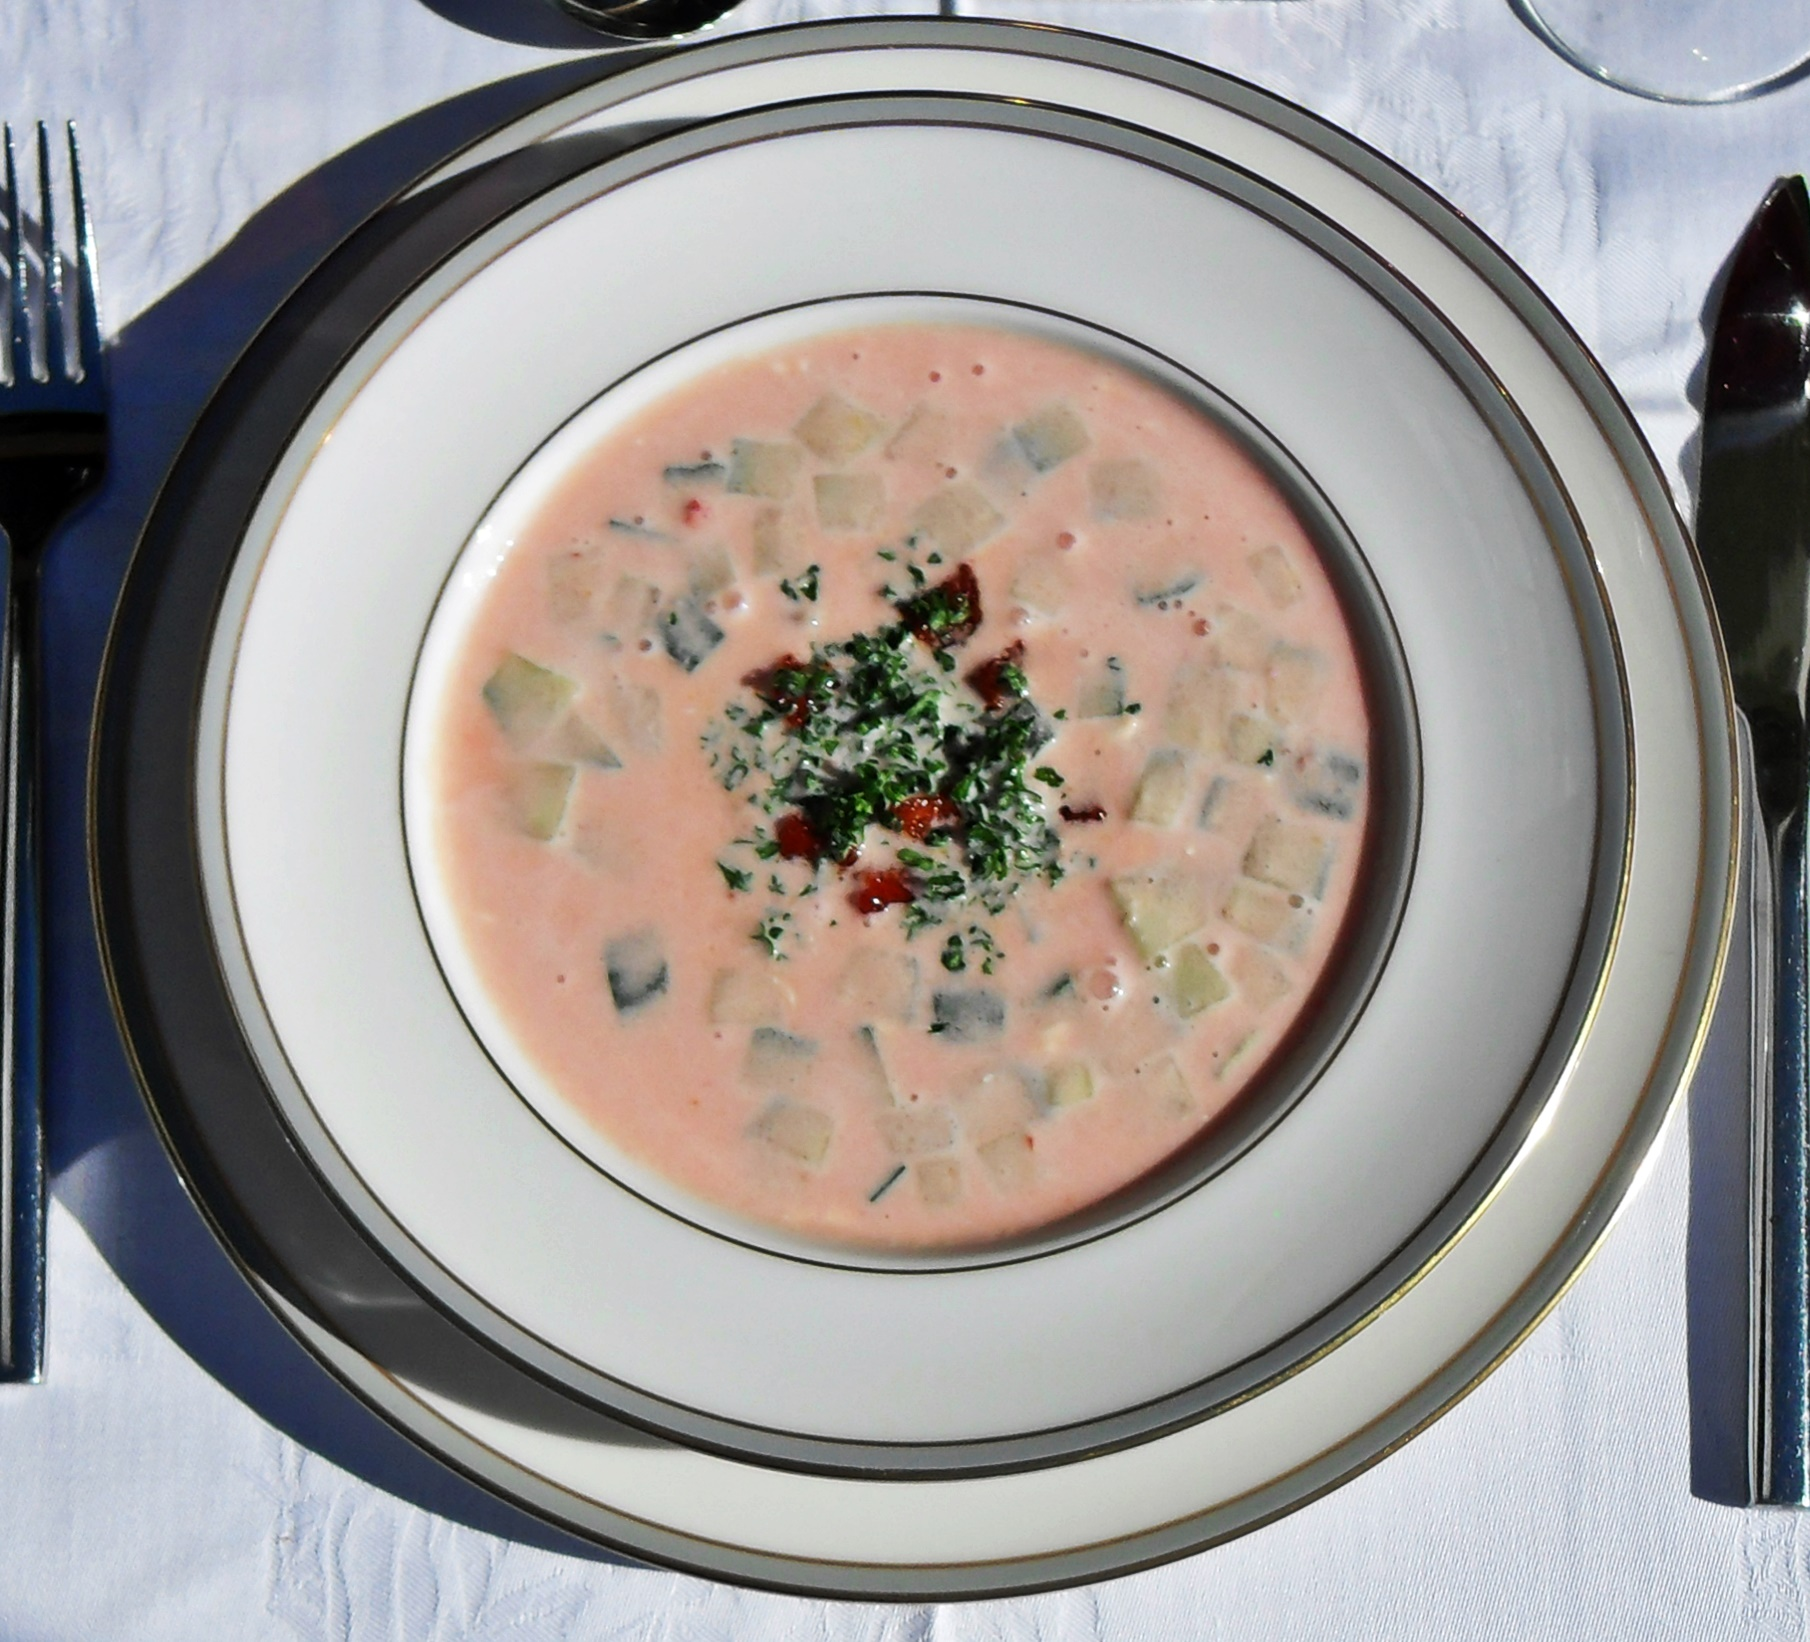 Spicy cold tomato soup, creamy, Spanish, Meditteranean